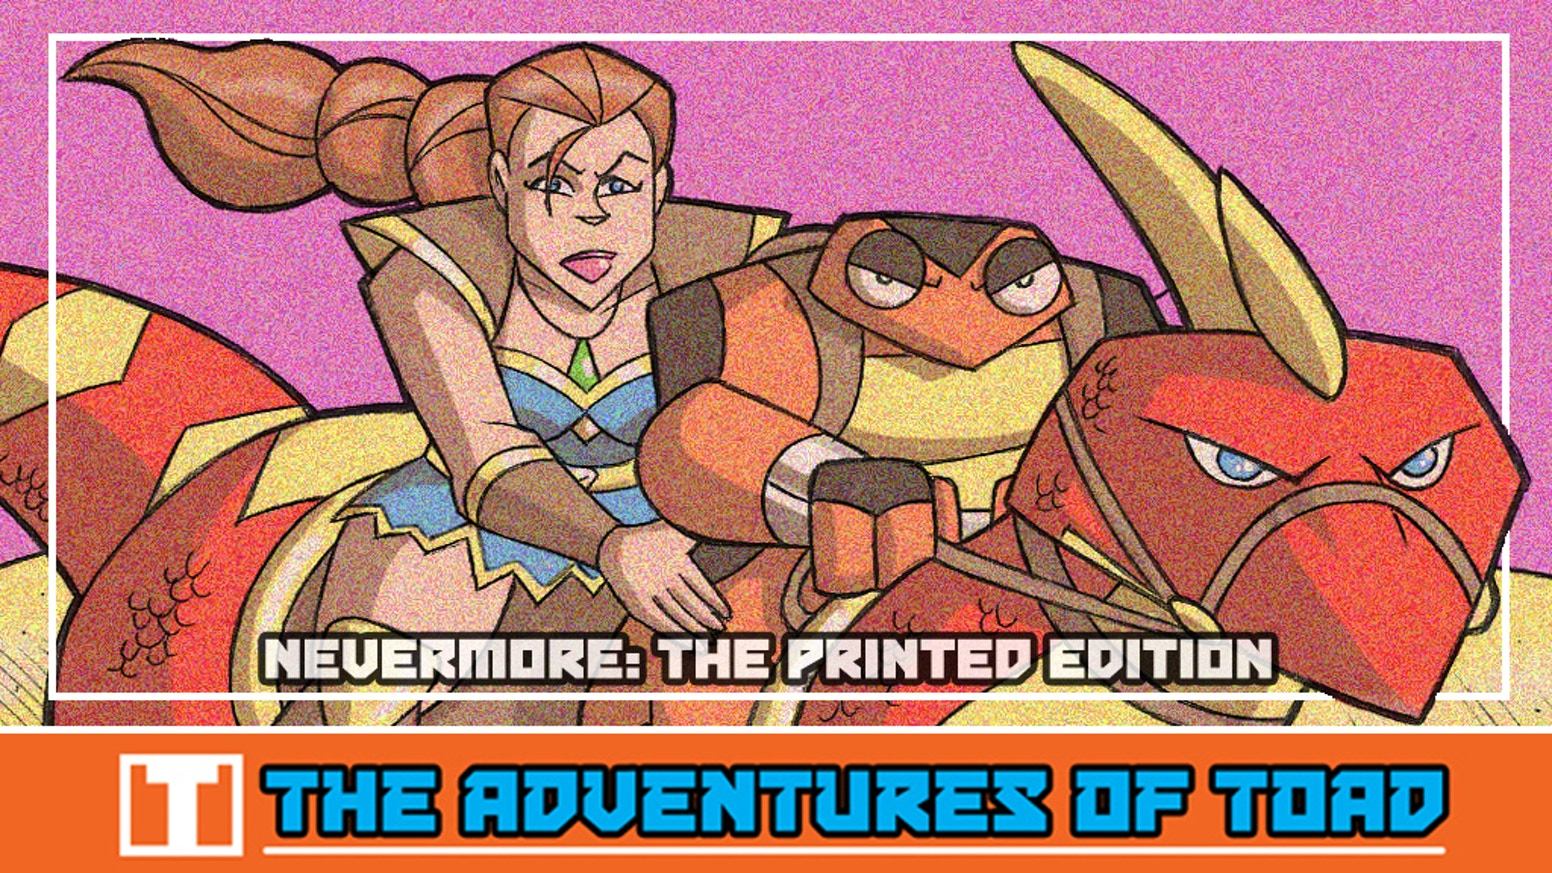 The action adventure webcomic The Adventures of Toad goes to print for the very first time!